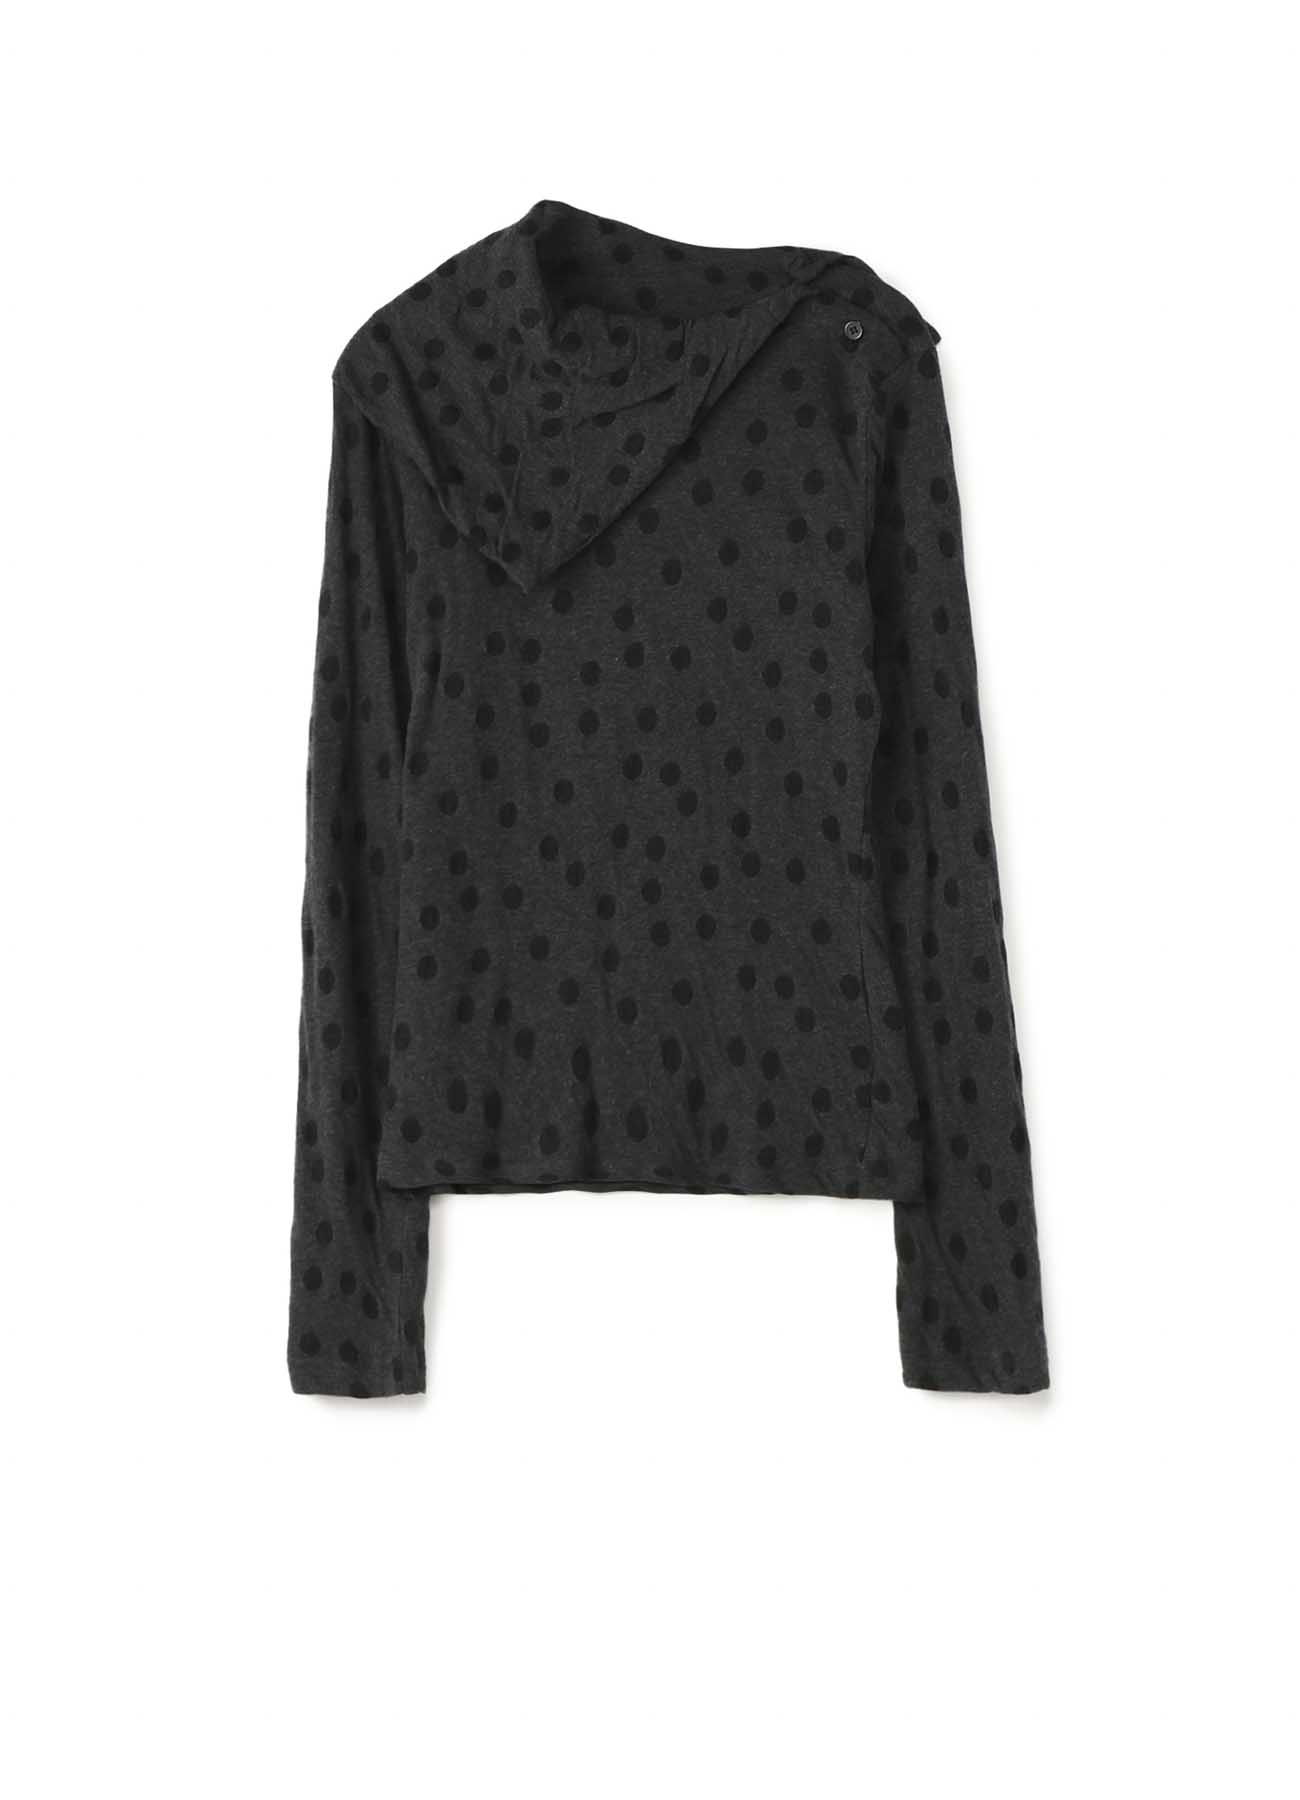 LYOCELL COTTON DOT DUAL-LAYER JACQUARD COLLARED LONG SLEEVE T-SHIRT